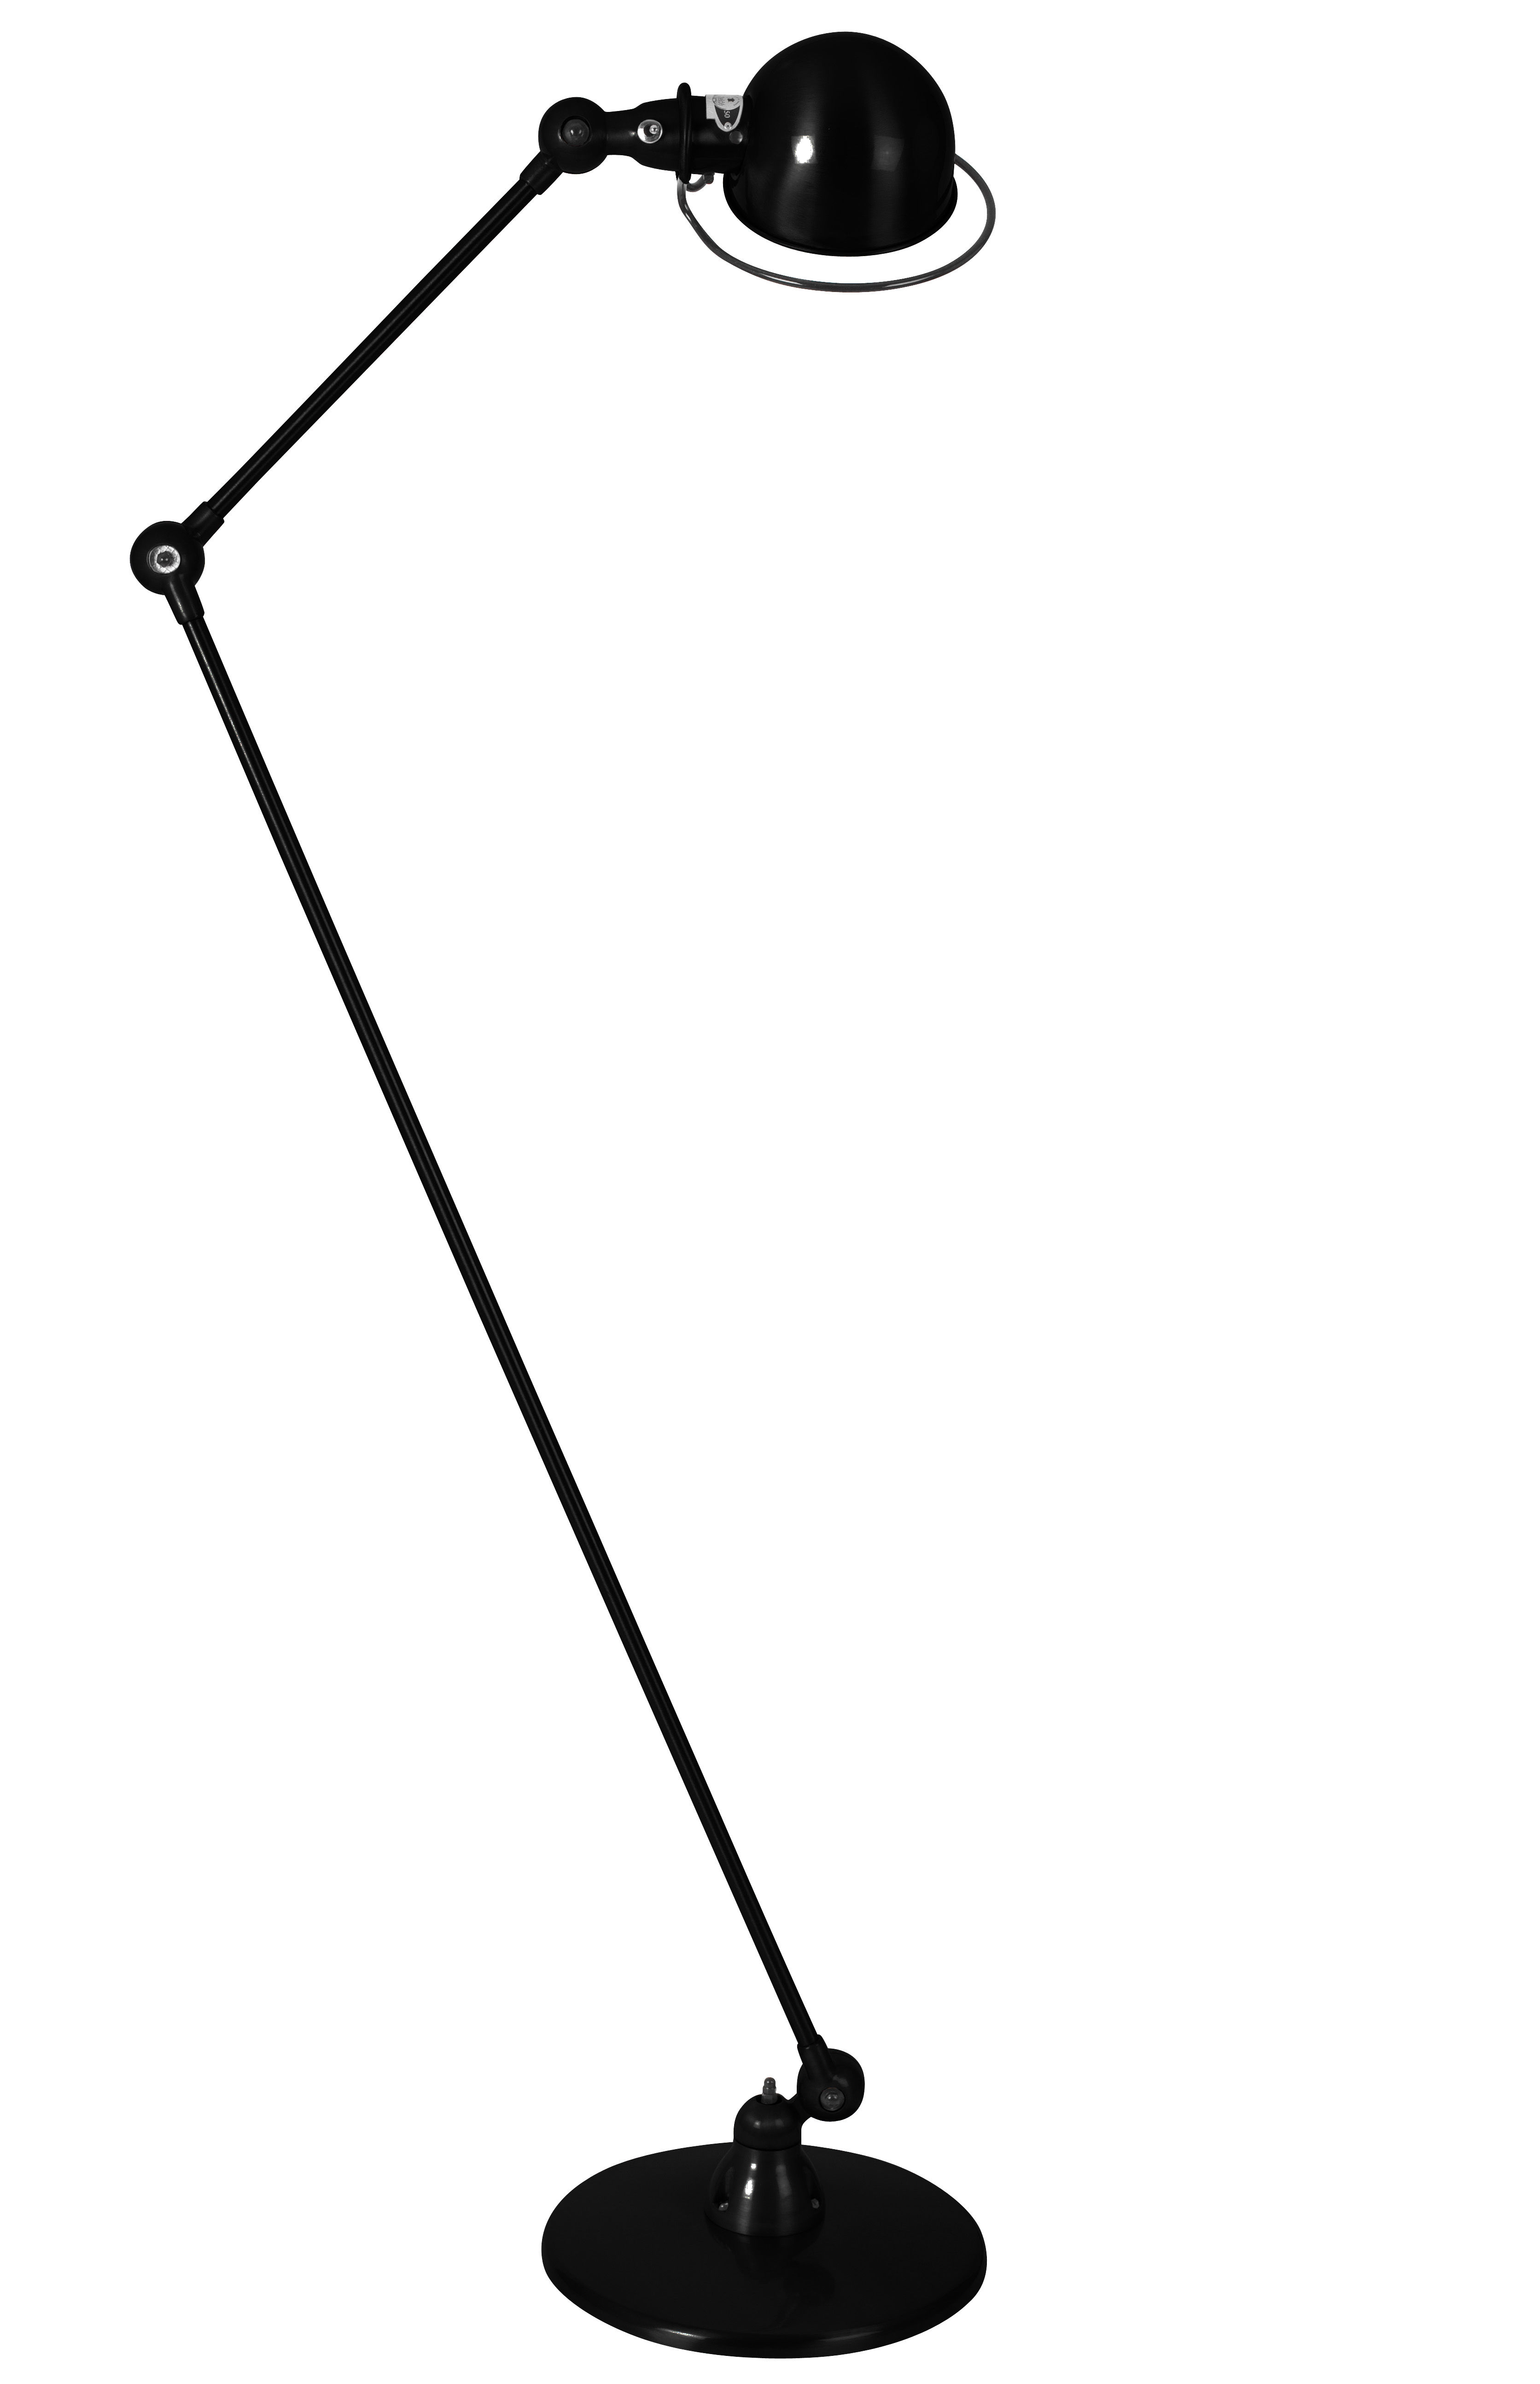 Lighting - Floor lamps - Loft Floor lamp - 2 arms - H max 160 cm by Jieldé - Matt black - Stainless steel